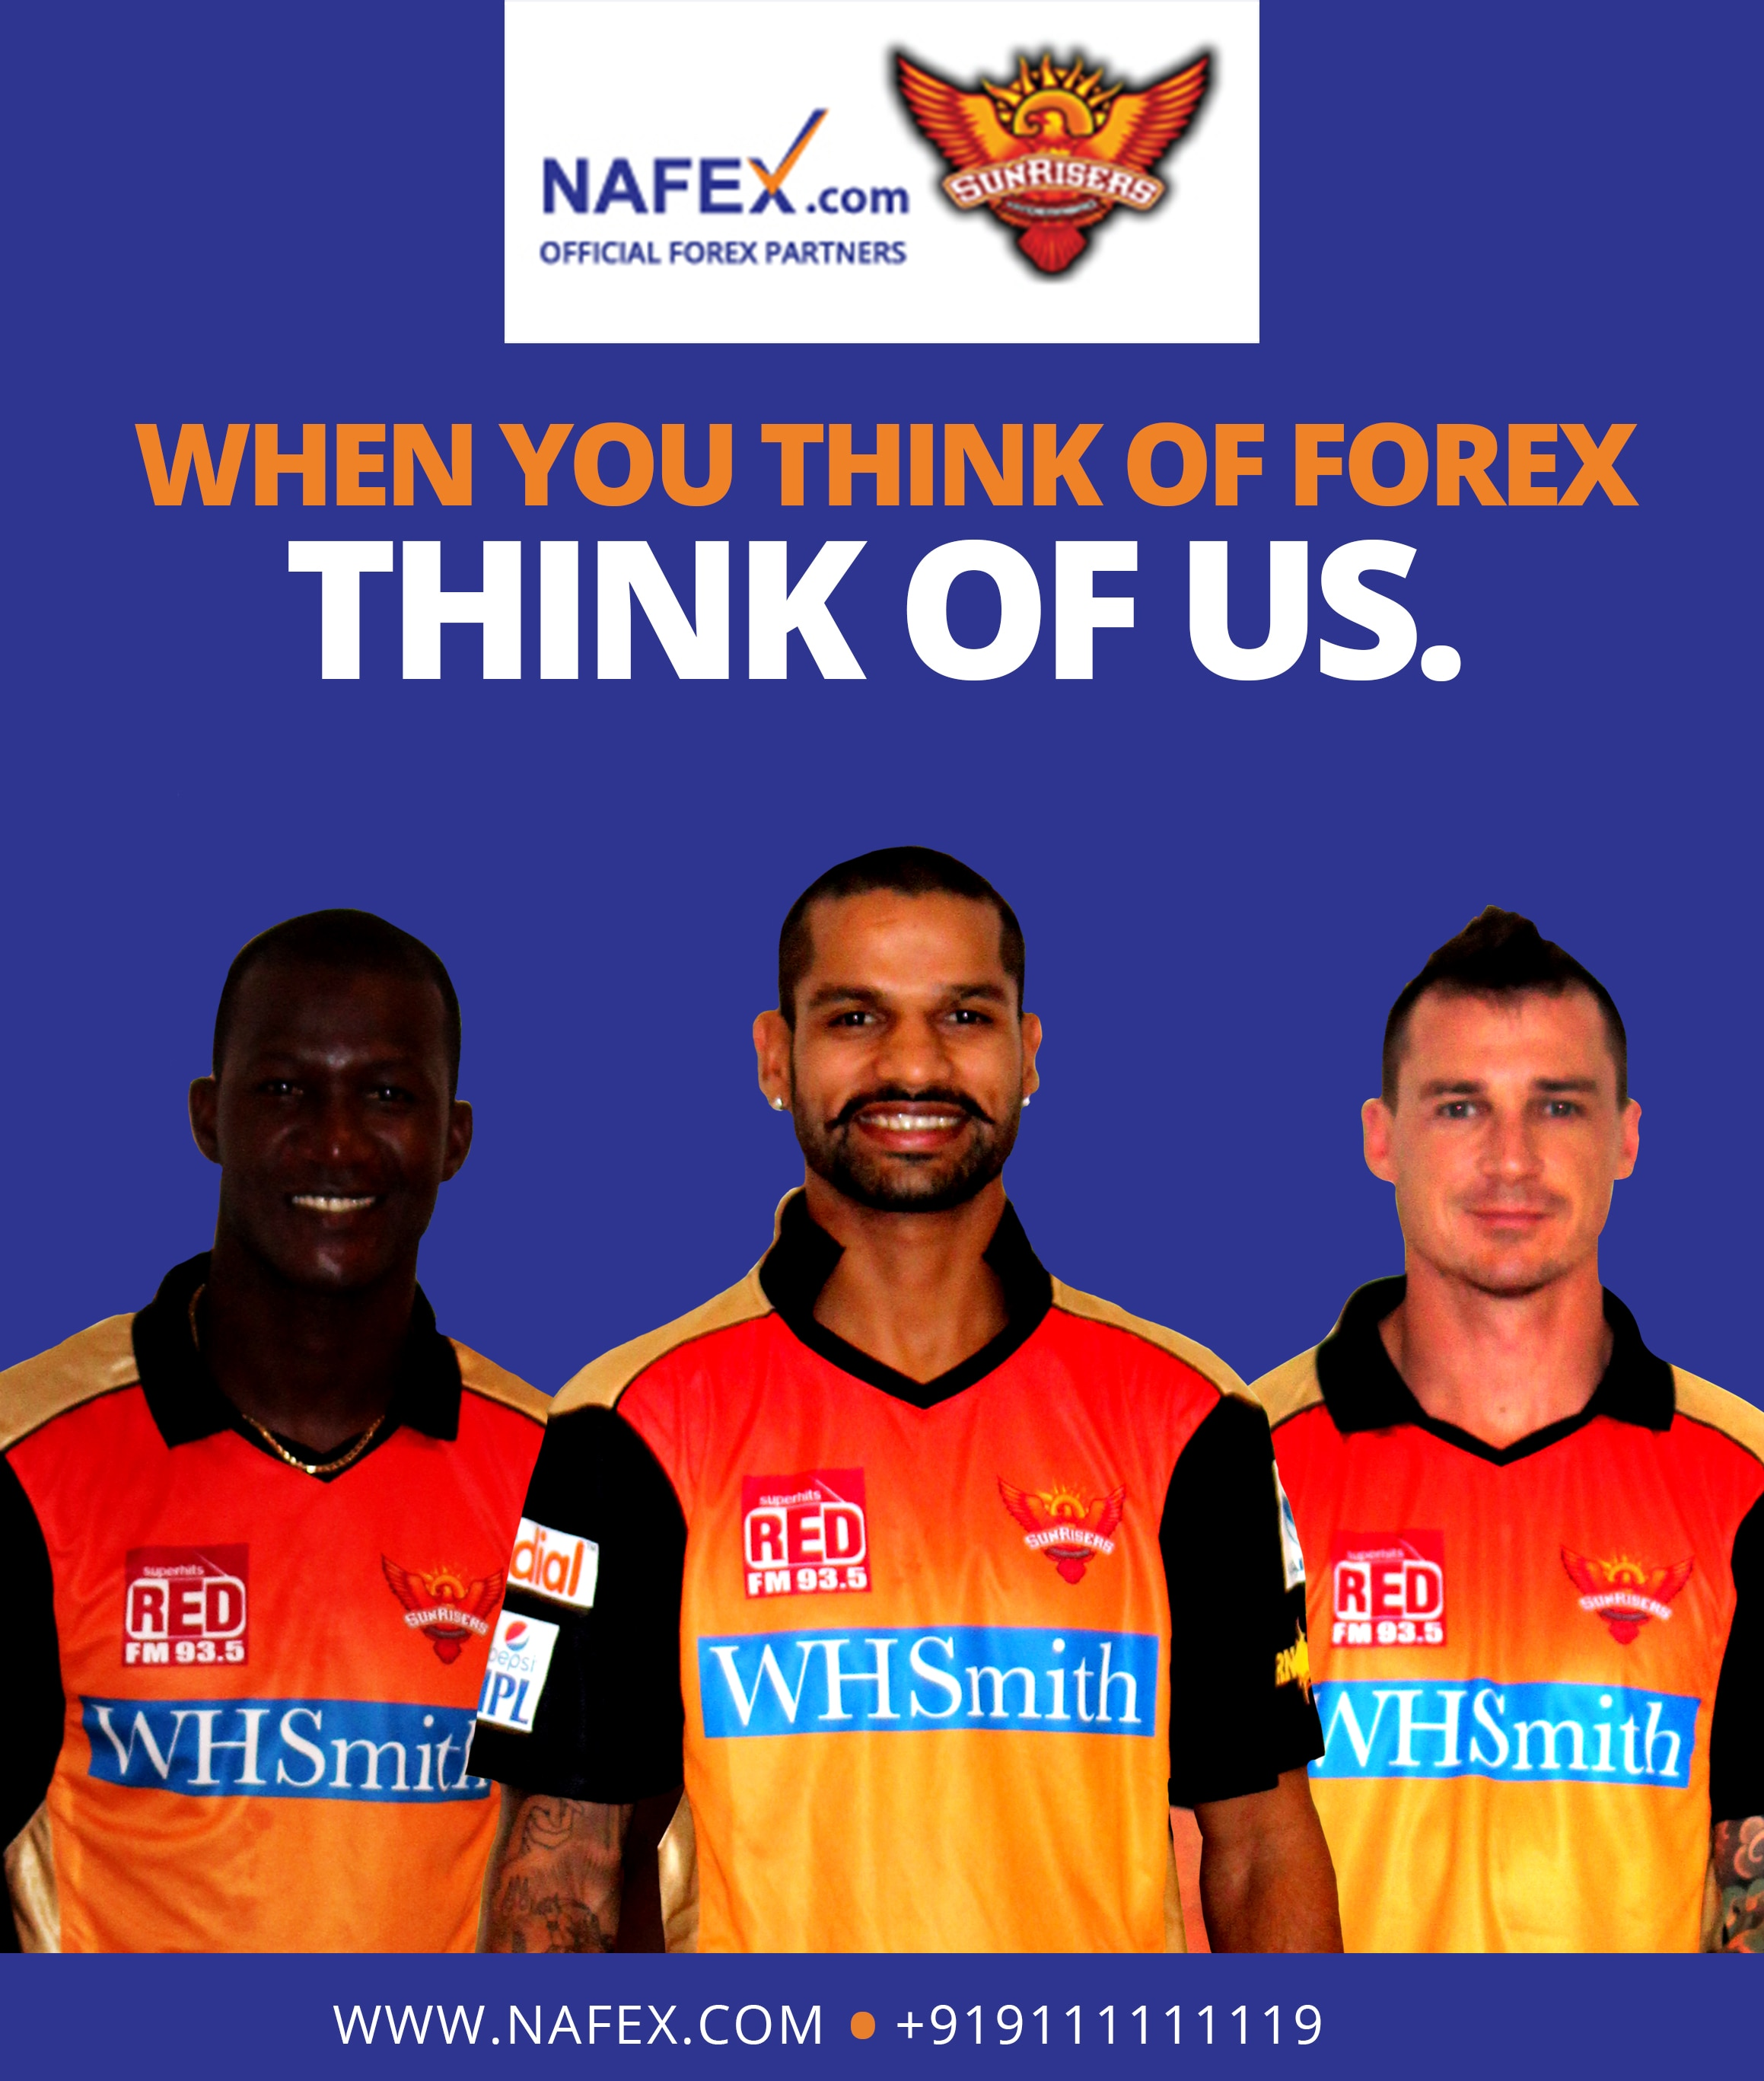 Nafex - Necklace Road / Hussian Sagar Foreign Currency Exchange Dealers Agents Necklace Road / Hussian Sagar, Online Travellers Cheque & Forex Prepaid Card